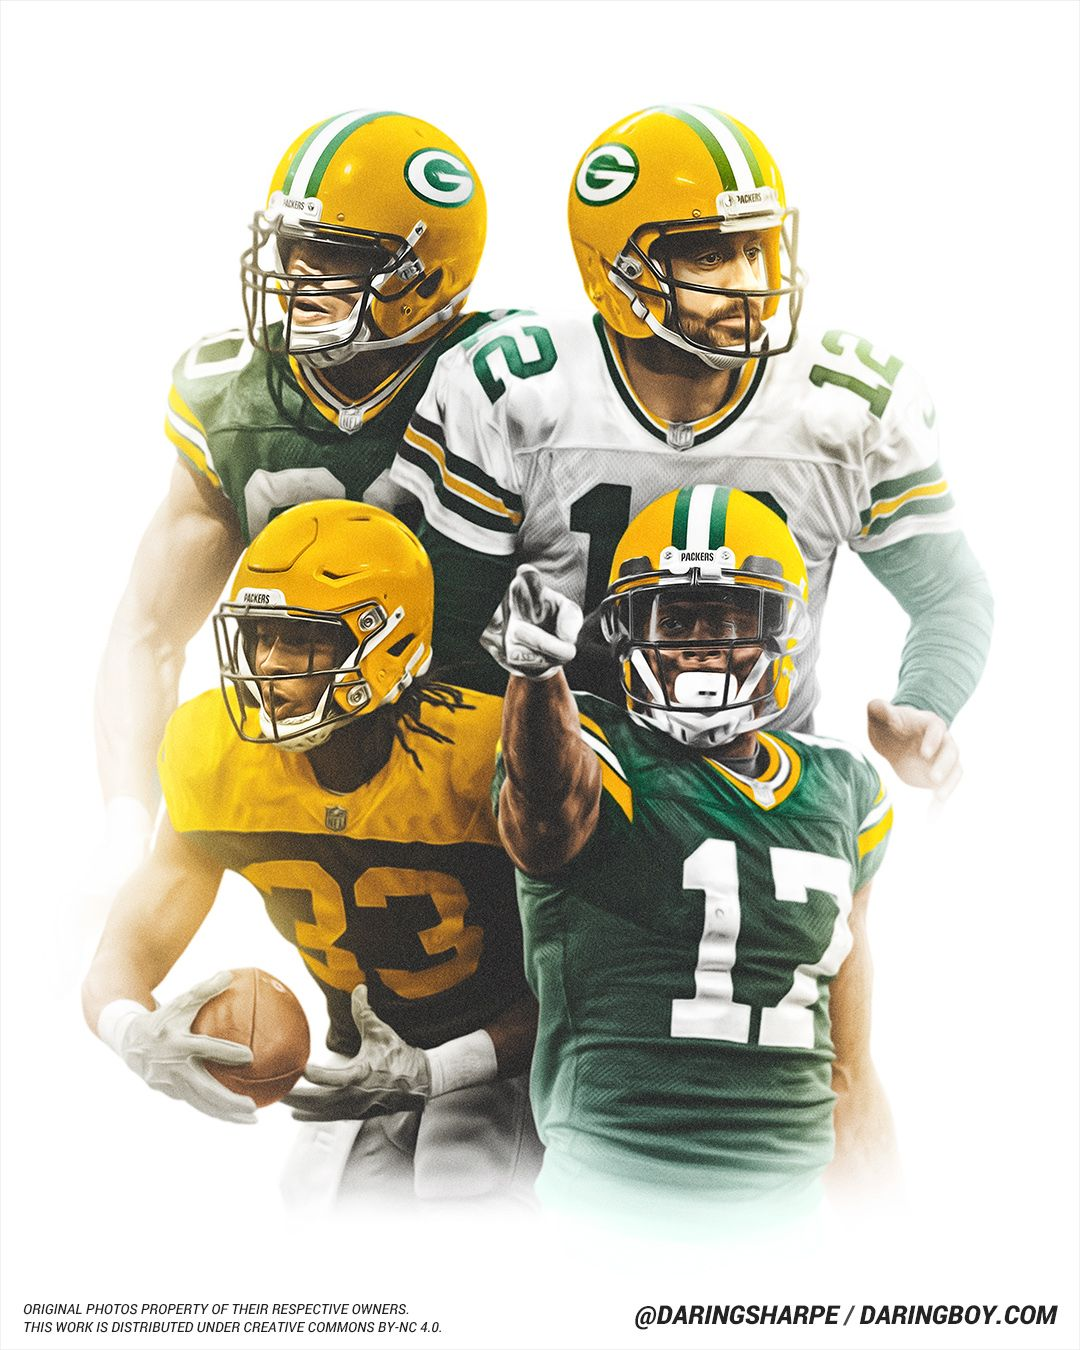 Aaron Rodgers Jimmy Graham Aaron Jones Davante Adams Green Bay Packers Green Bay Packers Packers Aaron Rodgers